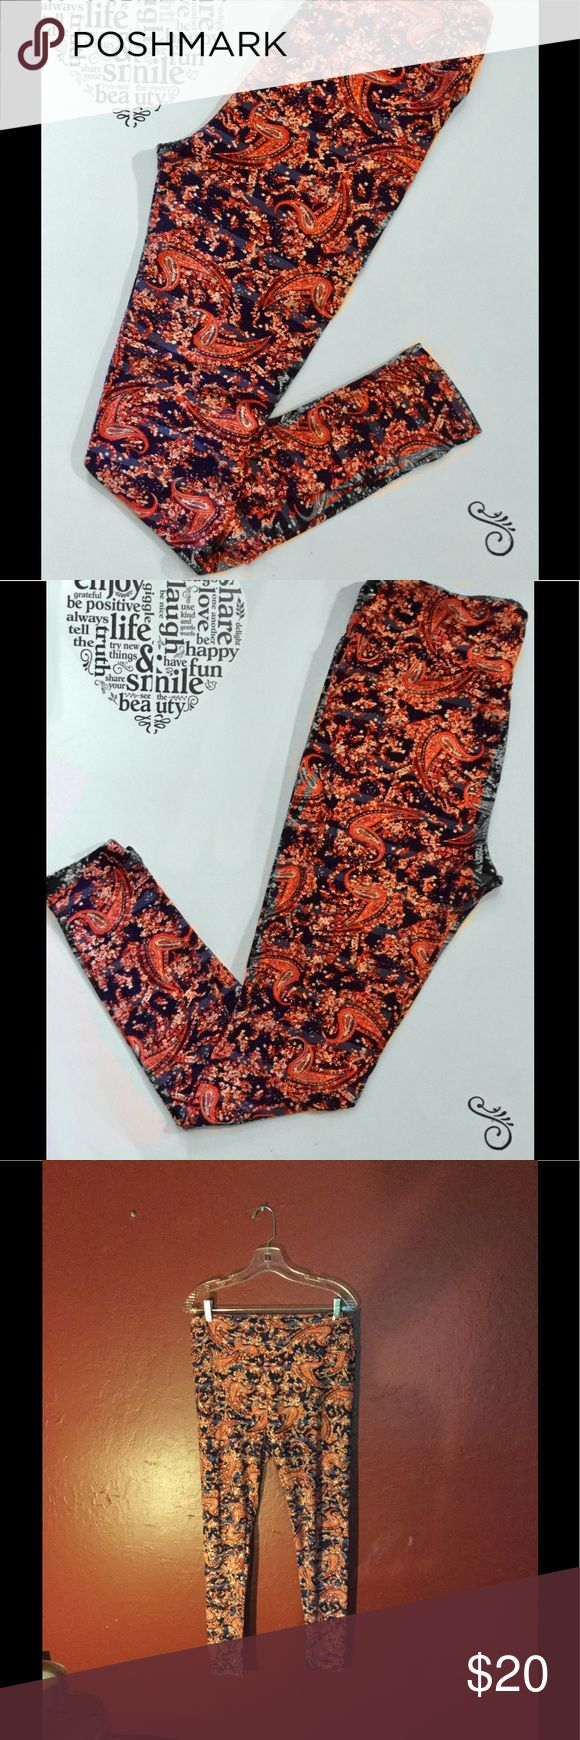 Lularoe TC Red Patterned Buttery Soft Leggings These are a pair of patterned Lularoe leggings from their Tall and Curvy line. These are absolutely stunning. They have the signature buttery soft feel that all of the Lularoe line has. These are pre-owned, but in great condition. Keywords: leggings, skirt, pants, plus size, one size, large, unicorn LuLaRoe Pants Leggings